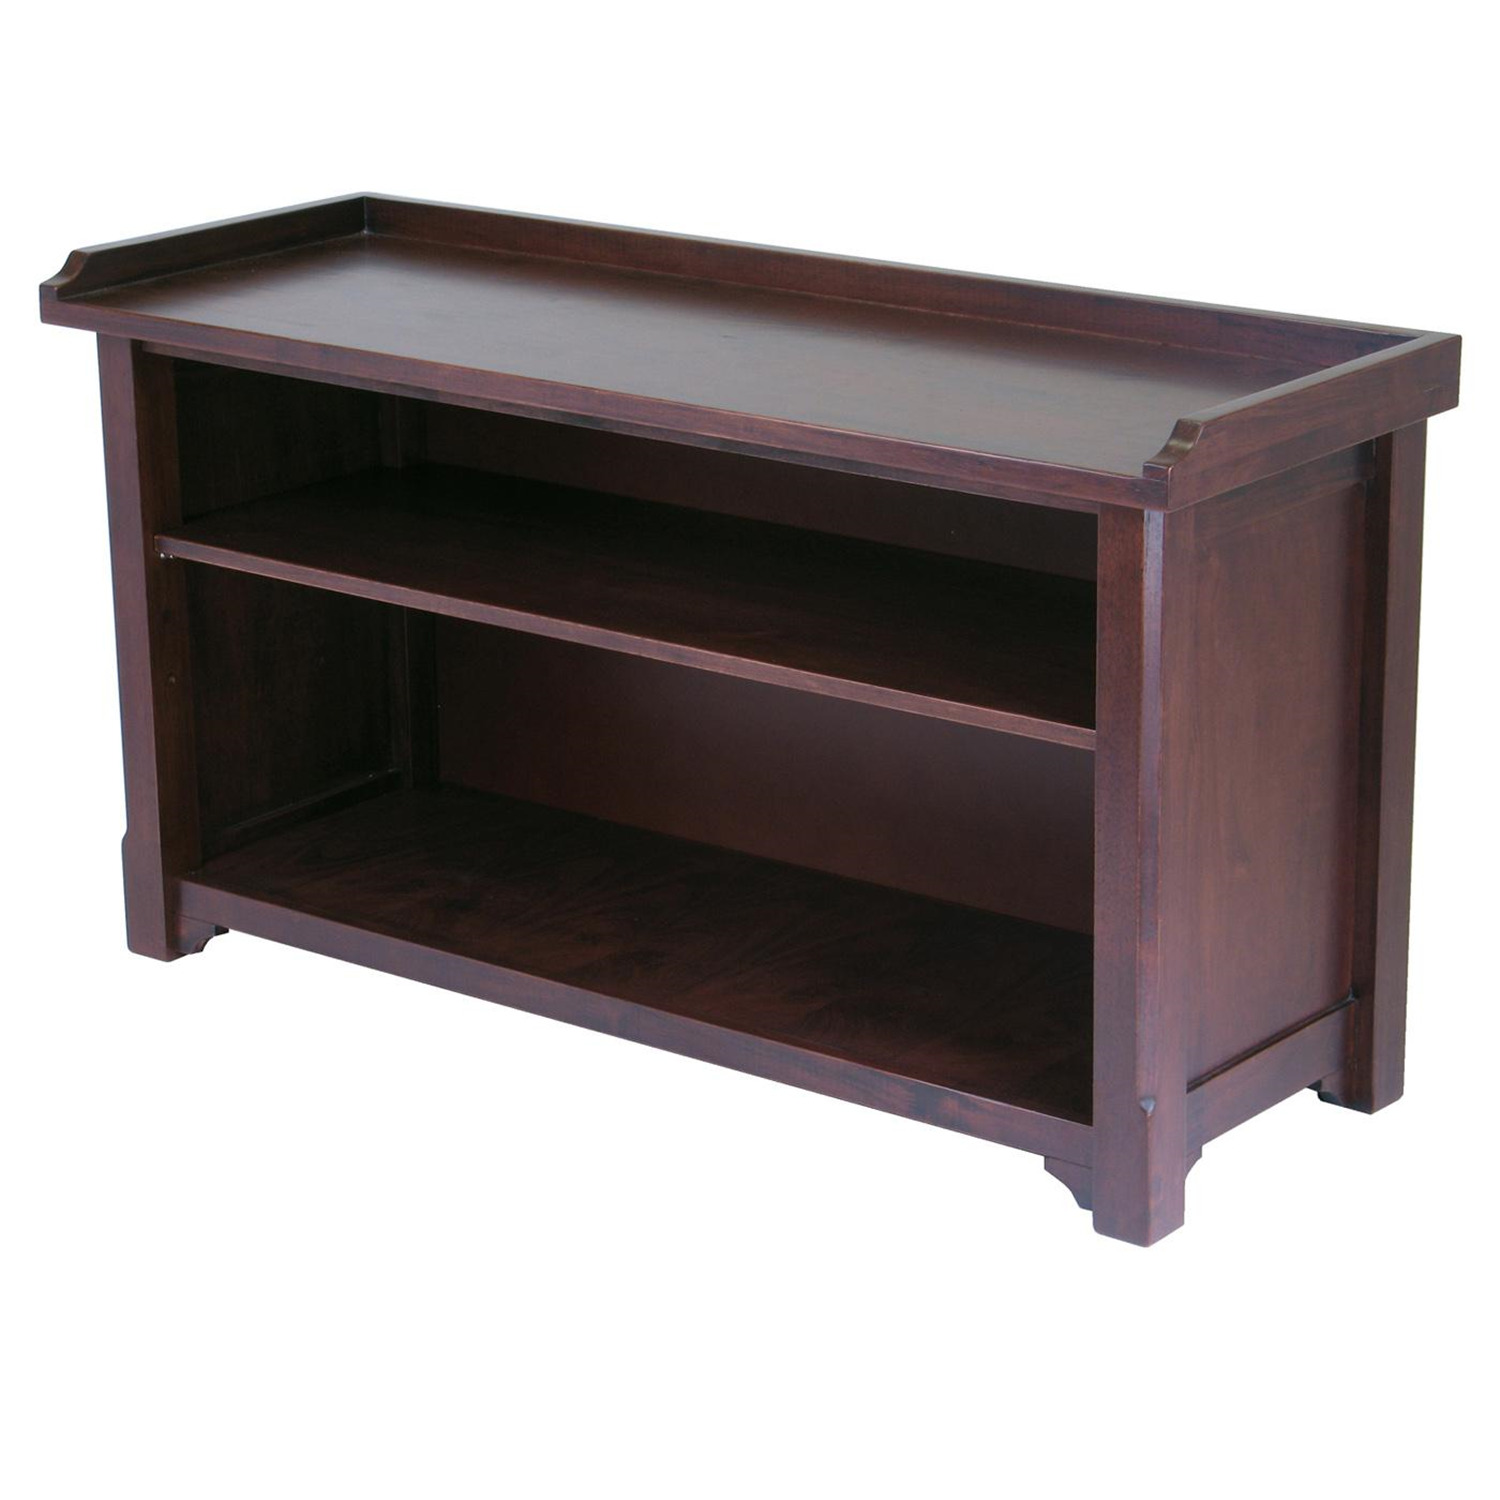 Winsome milan bench with storage shelf by oj commerce 94640 Bench with shelf